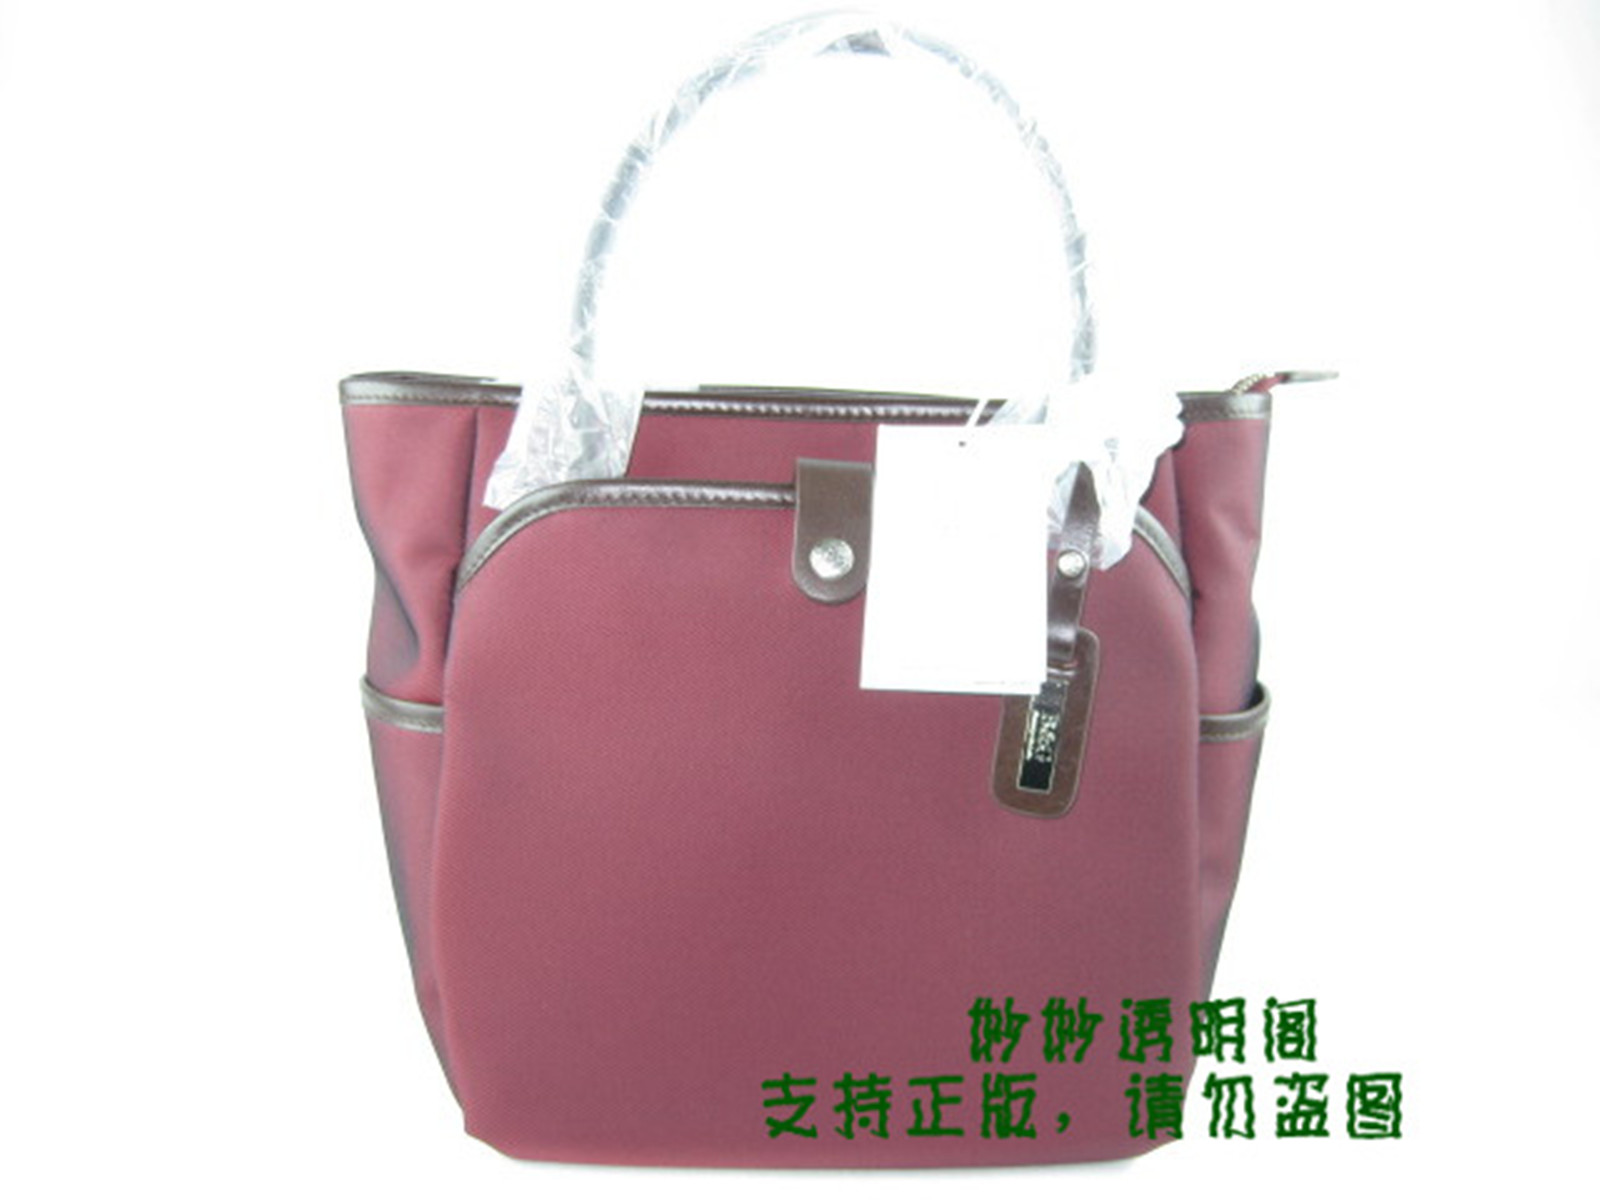 B&g women's handbag colorful nylon cowhide women's handbag fashion handbag 31103227(China (Mainland))